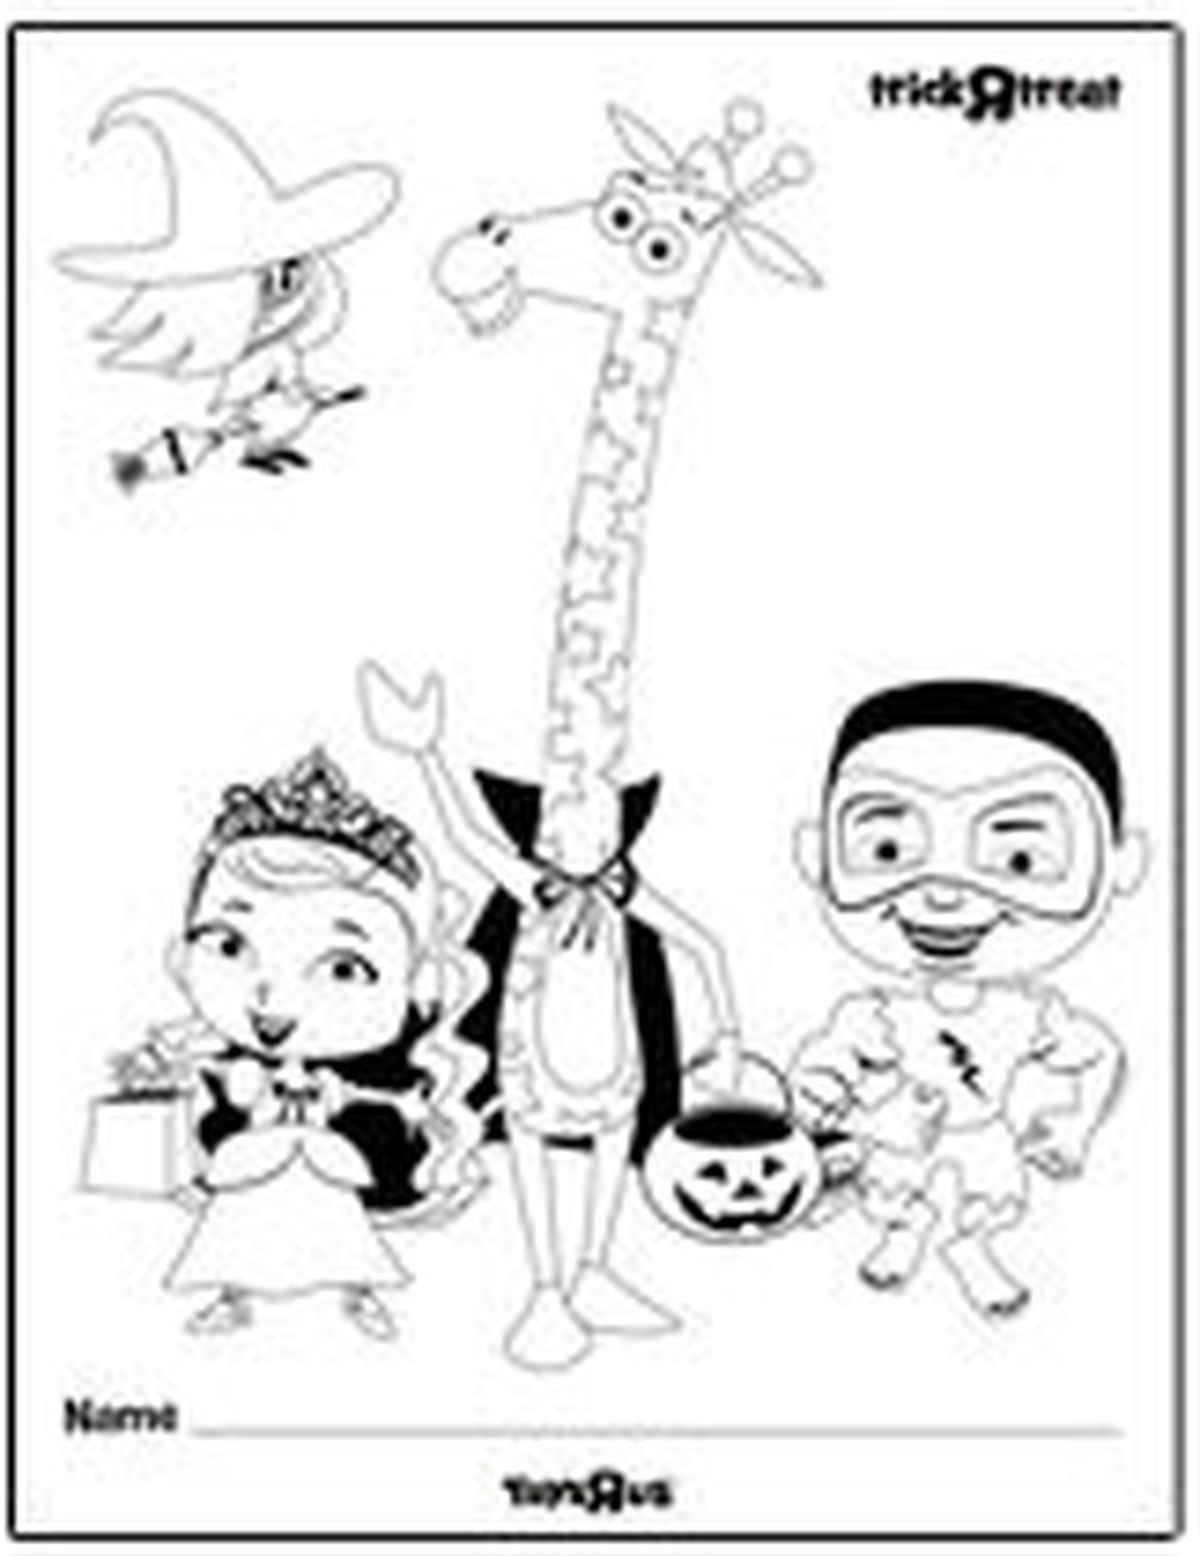 Toys R Us Free Halloween printables + New Toys R Us